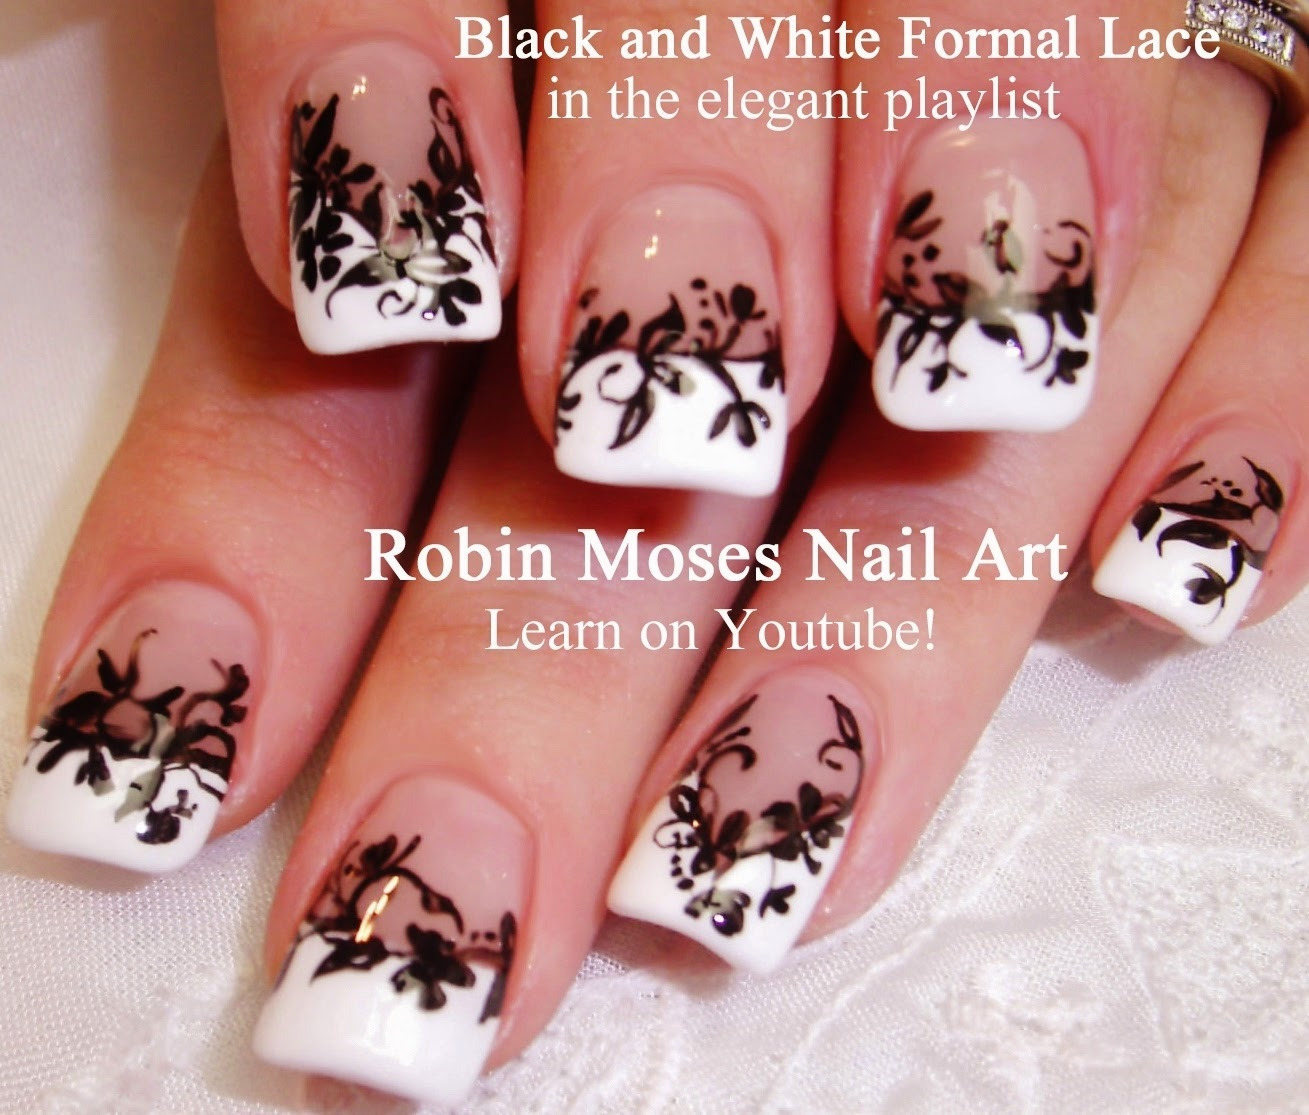 Robin moses nail art nail art trends 2014 nail trends damask nail art trends 2014 nail trends damask nails nail art lace nails pink ombre nail art nails ombre lotte reiniger nail designs ombre nail prinsesfo Choice Image